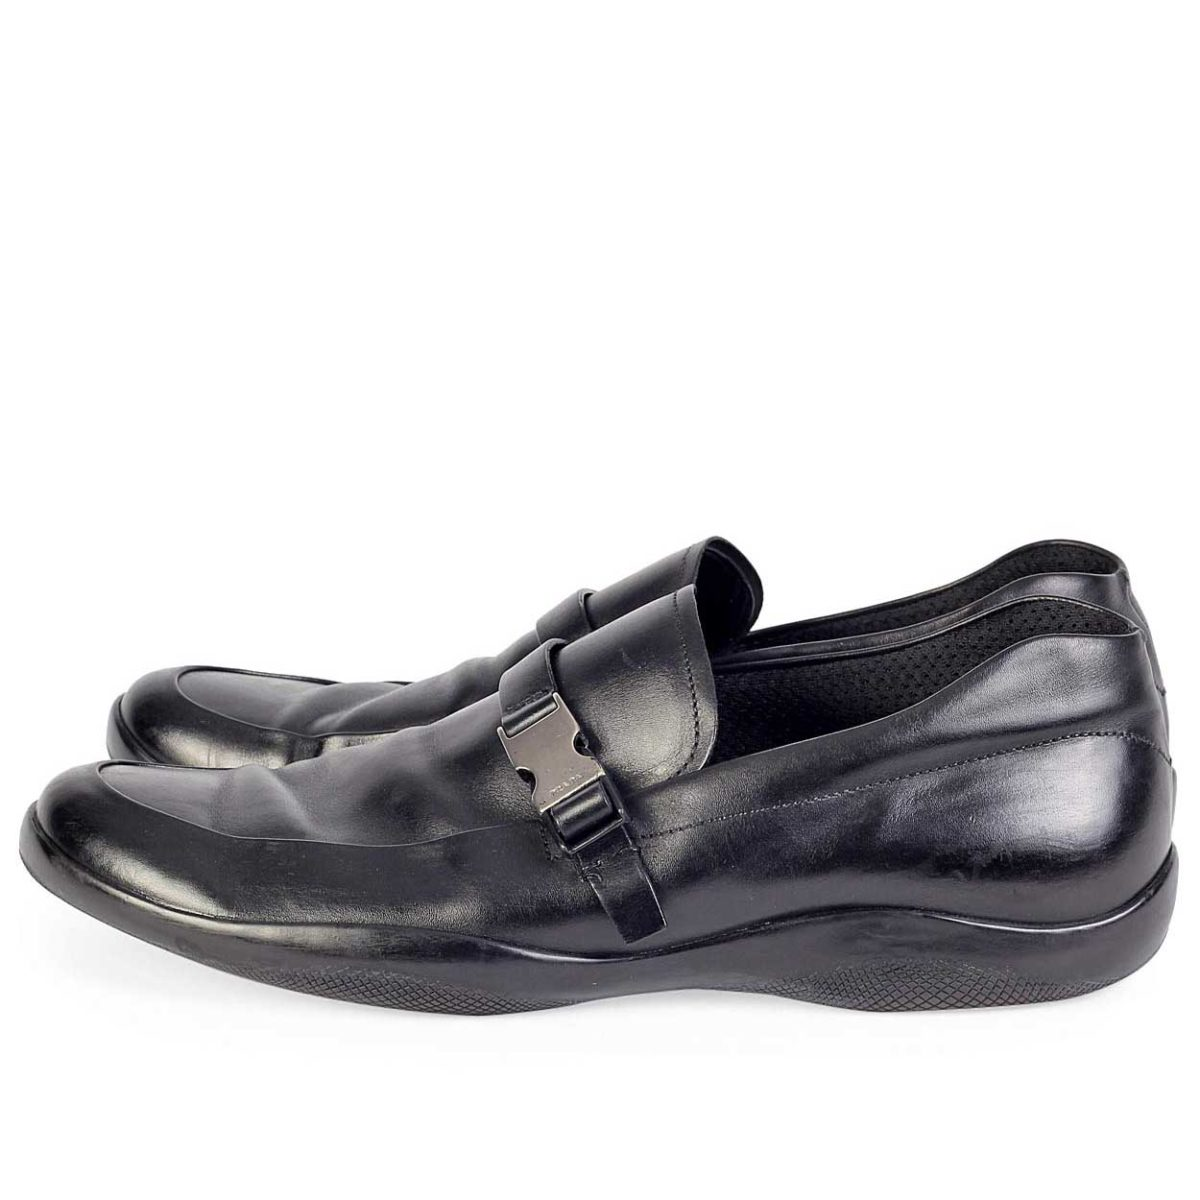 b3d769e76516 PRADA Black Leather Mens Loafers with Rubber Soles - S  46 (11)